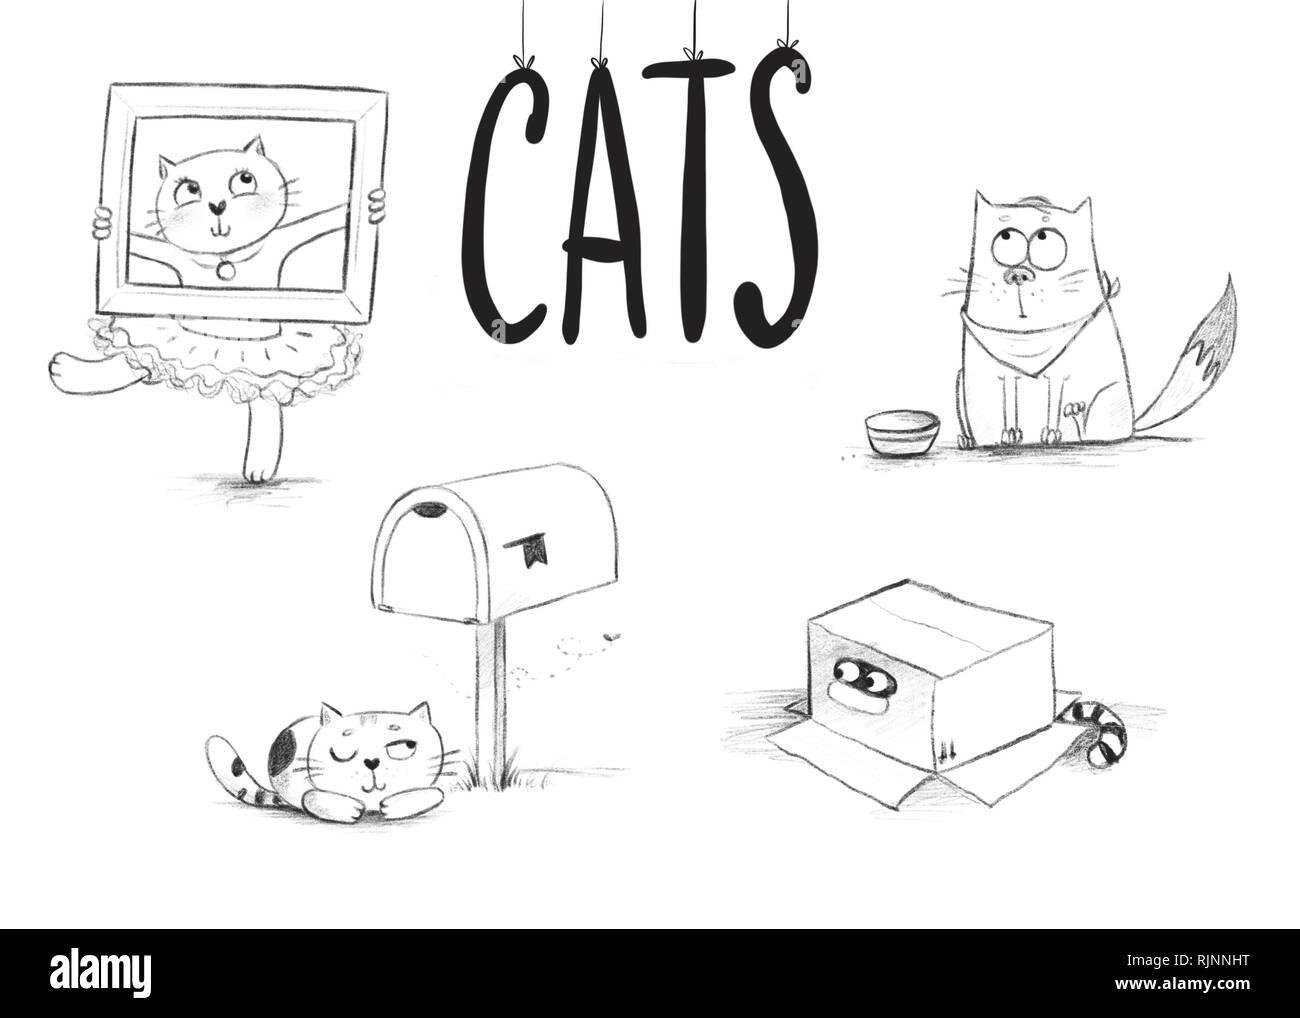 pencil sketches of cute cats in different situations - Stock Image